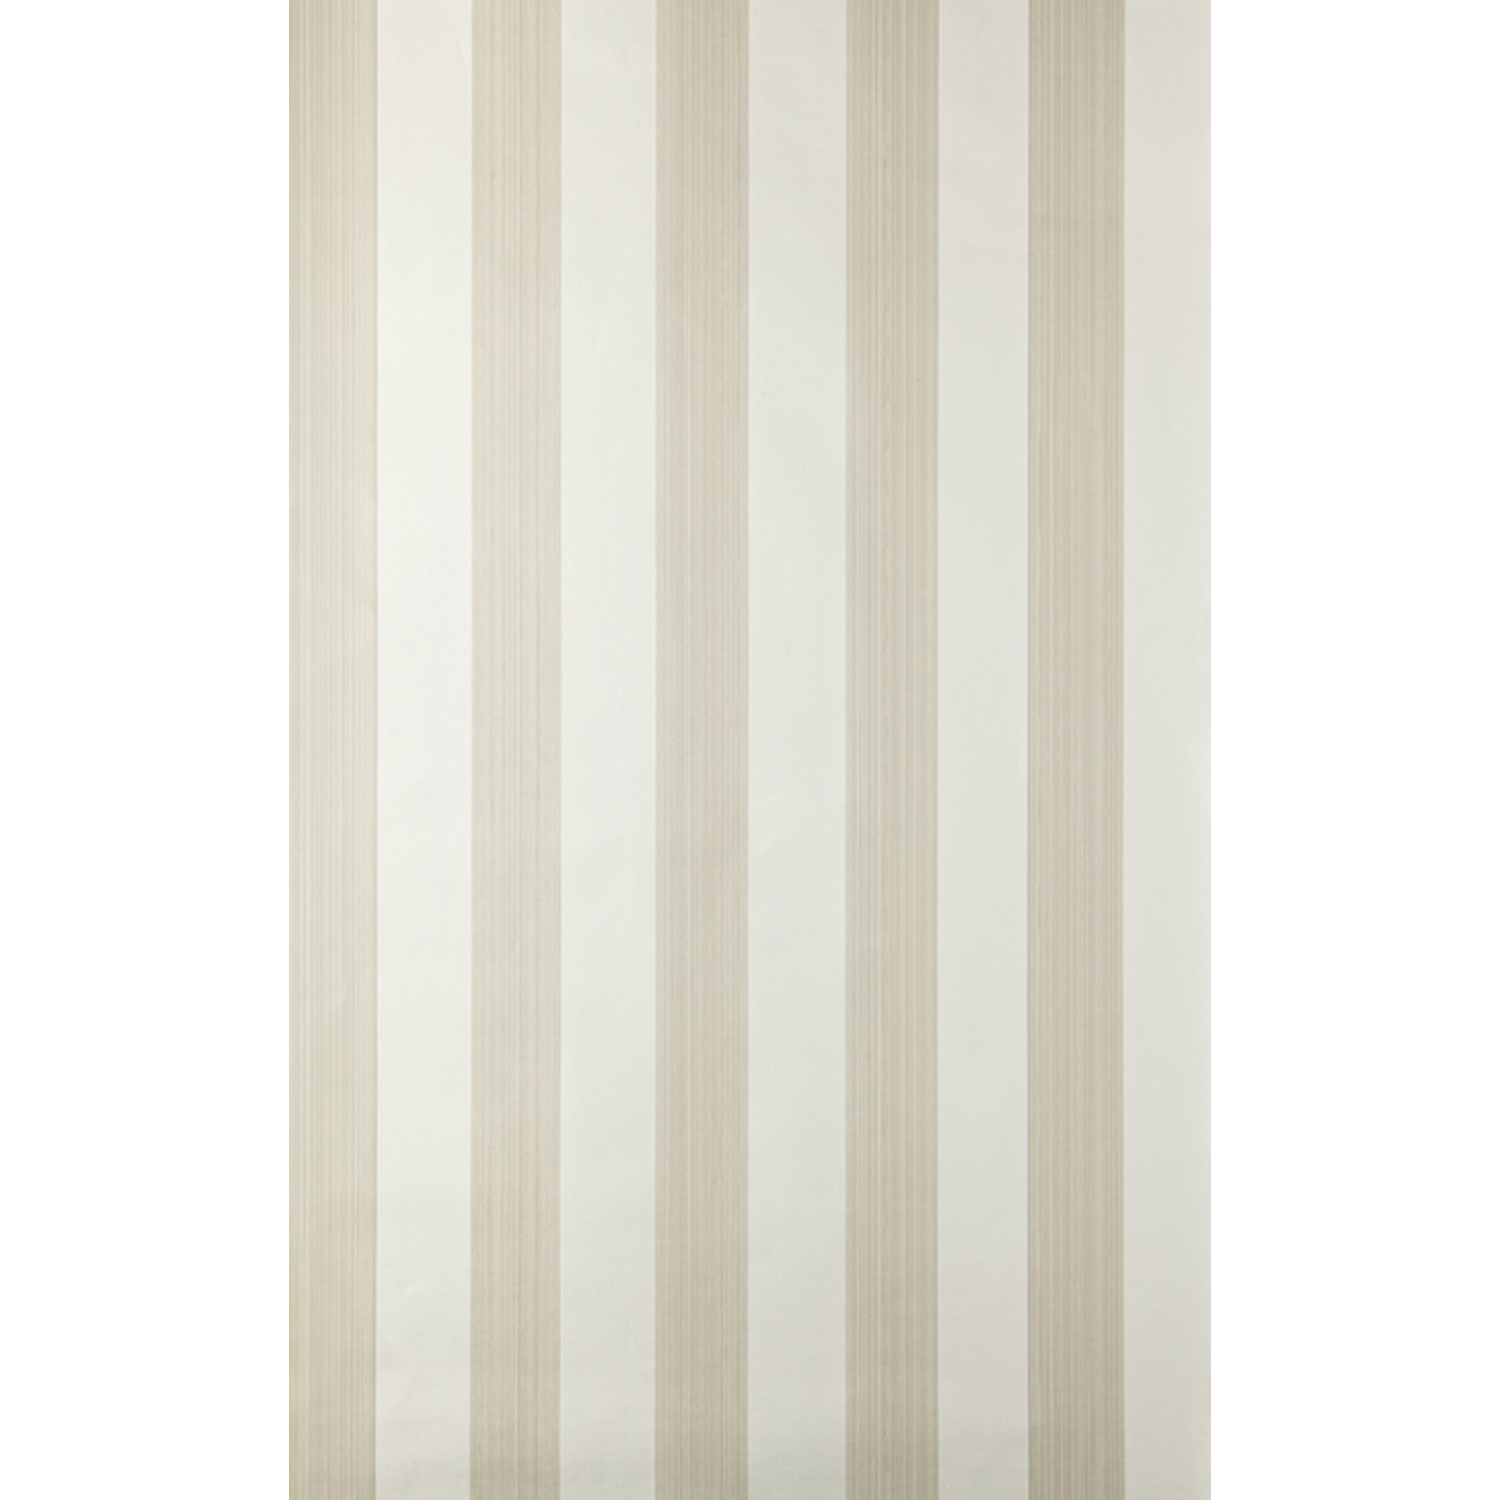 Image of Farrow And Ball 5 Stripe Wallpaper 6-12, Beige